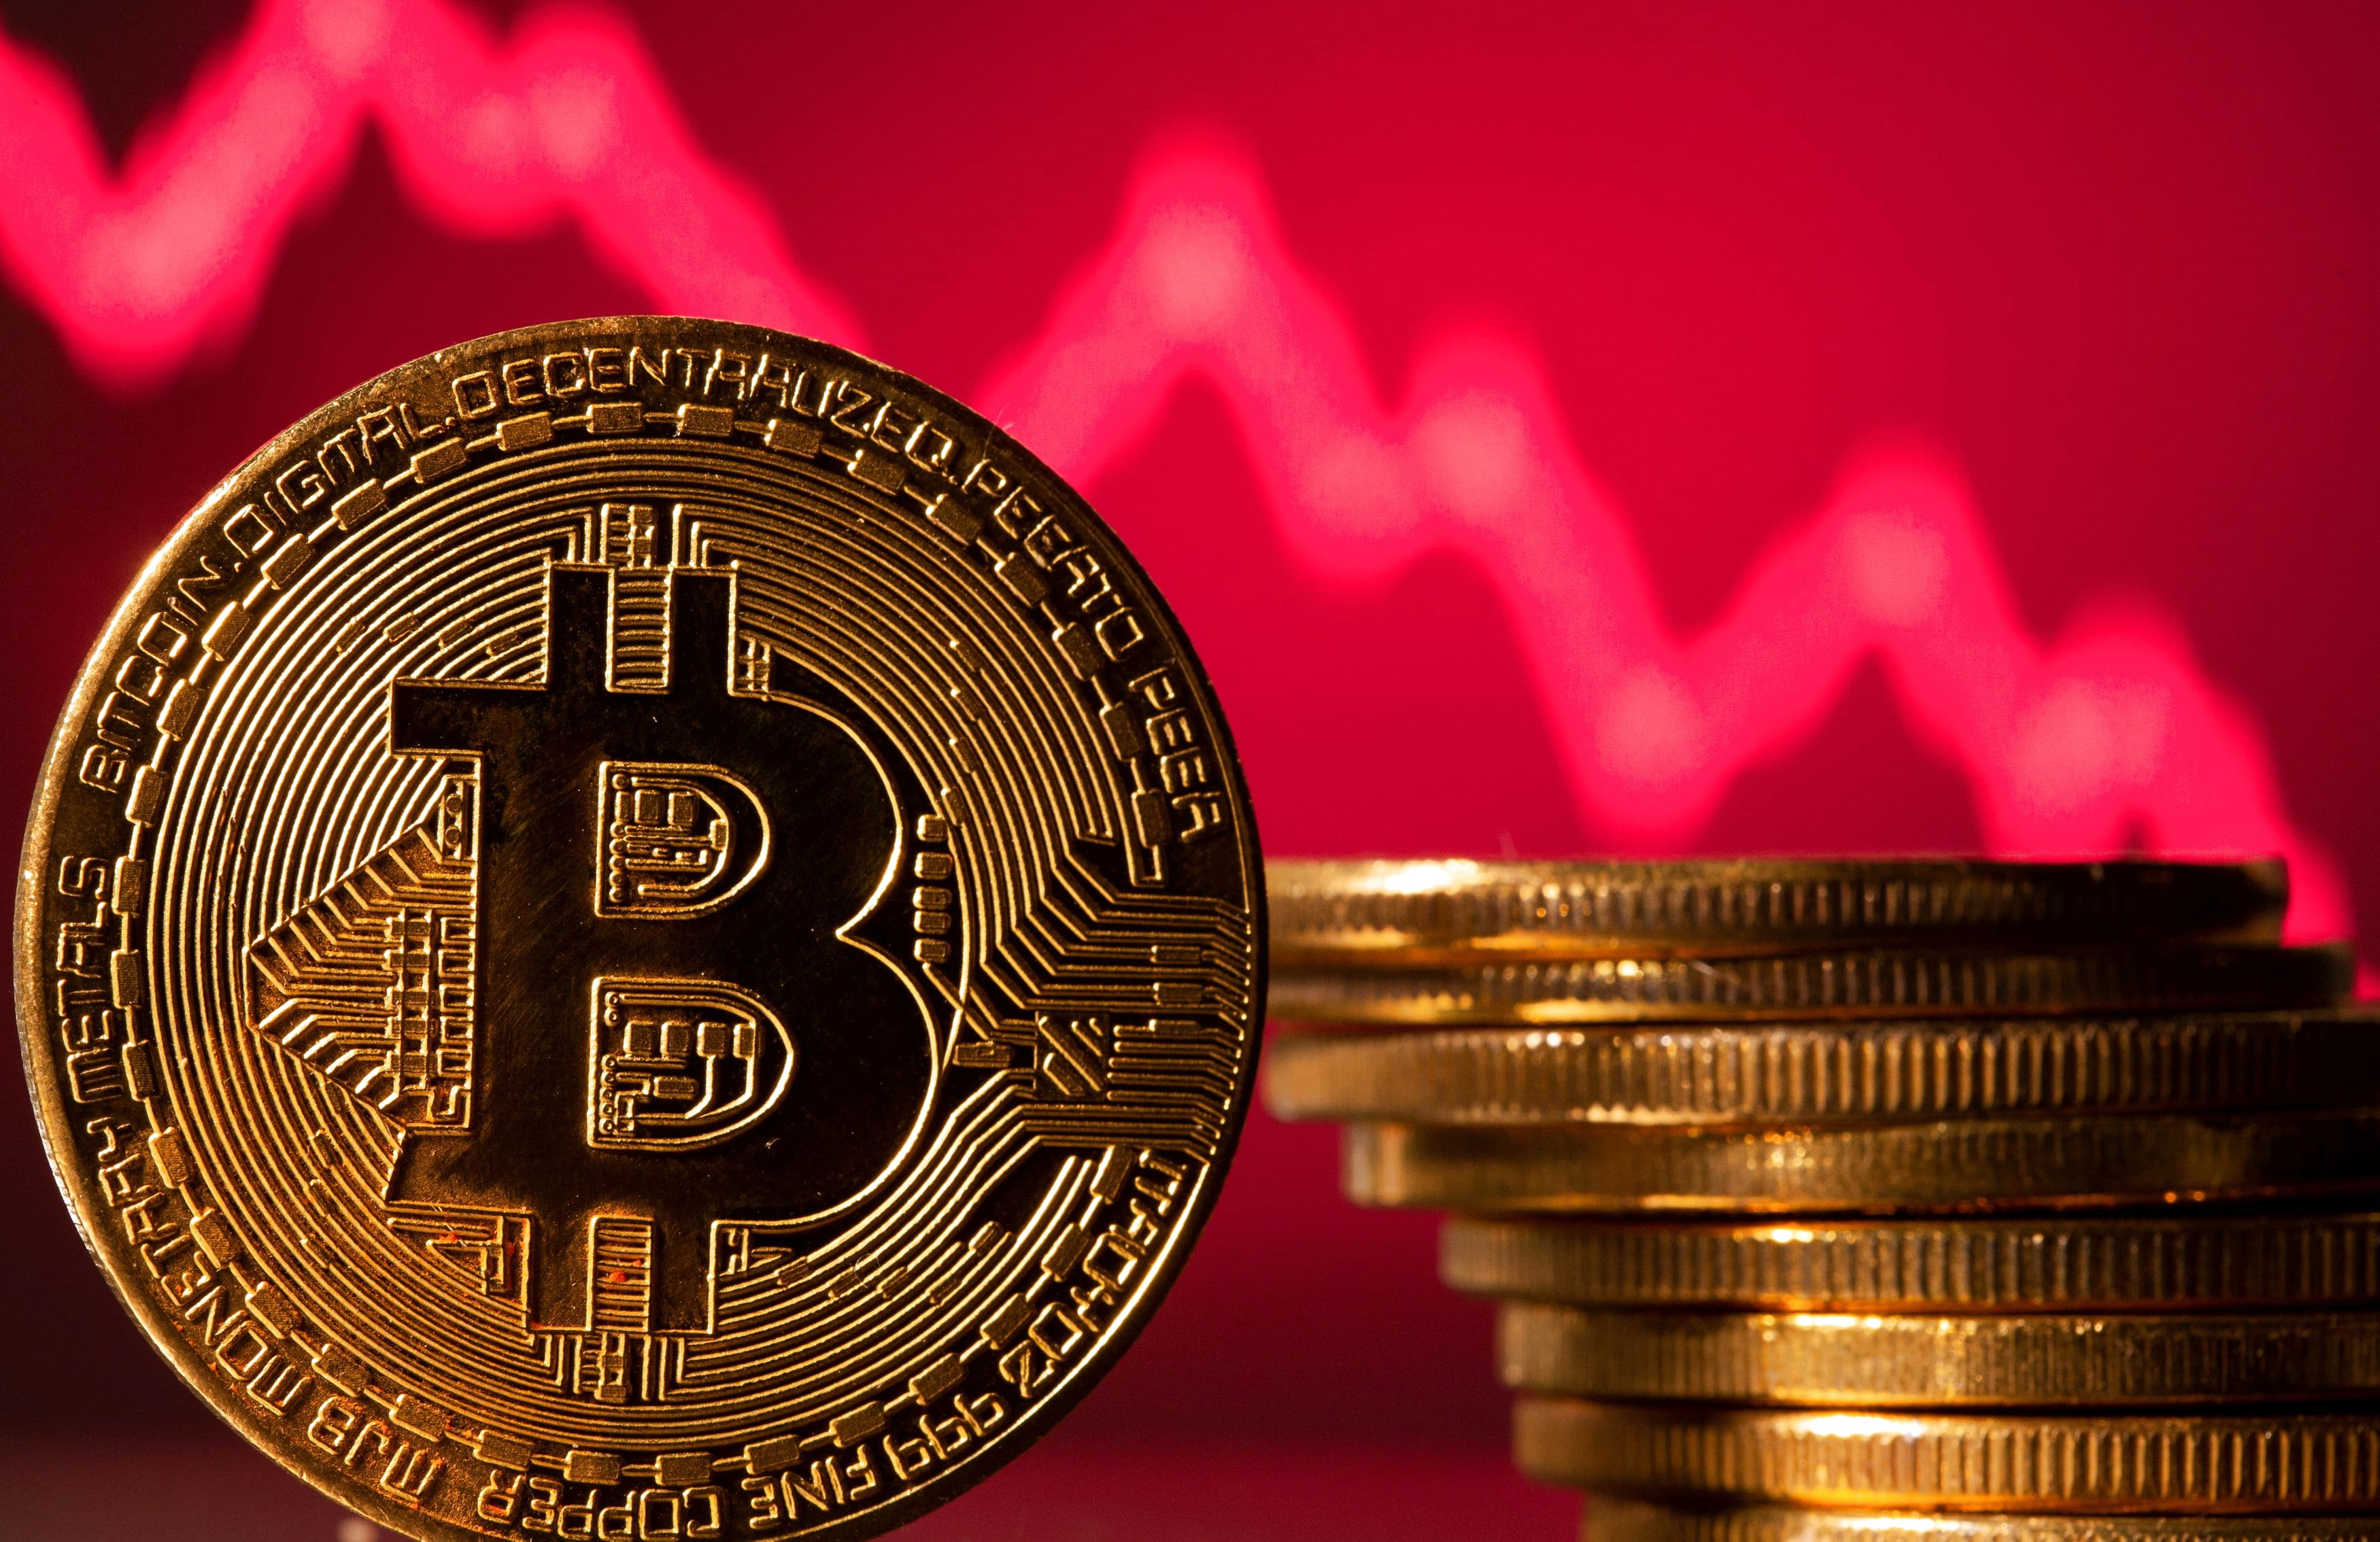 Bitcoin (BTC) falls below $30,000 as cryptocurrency market plunges